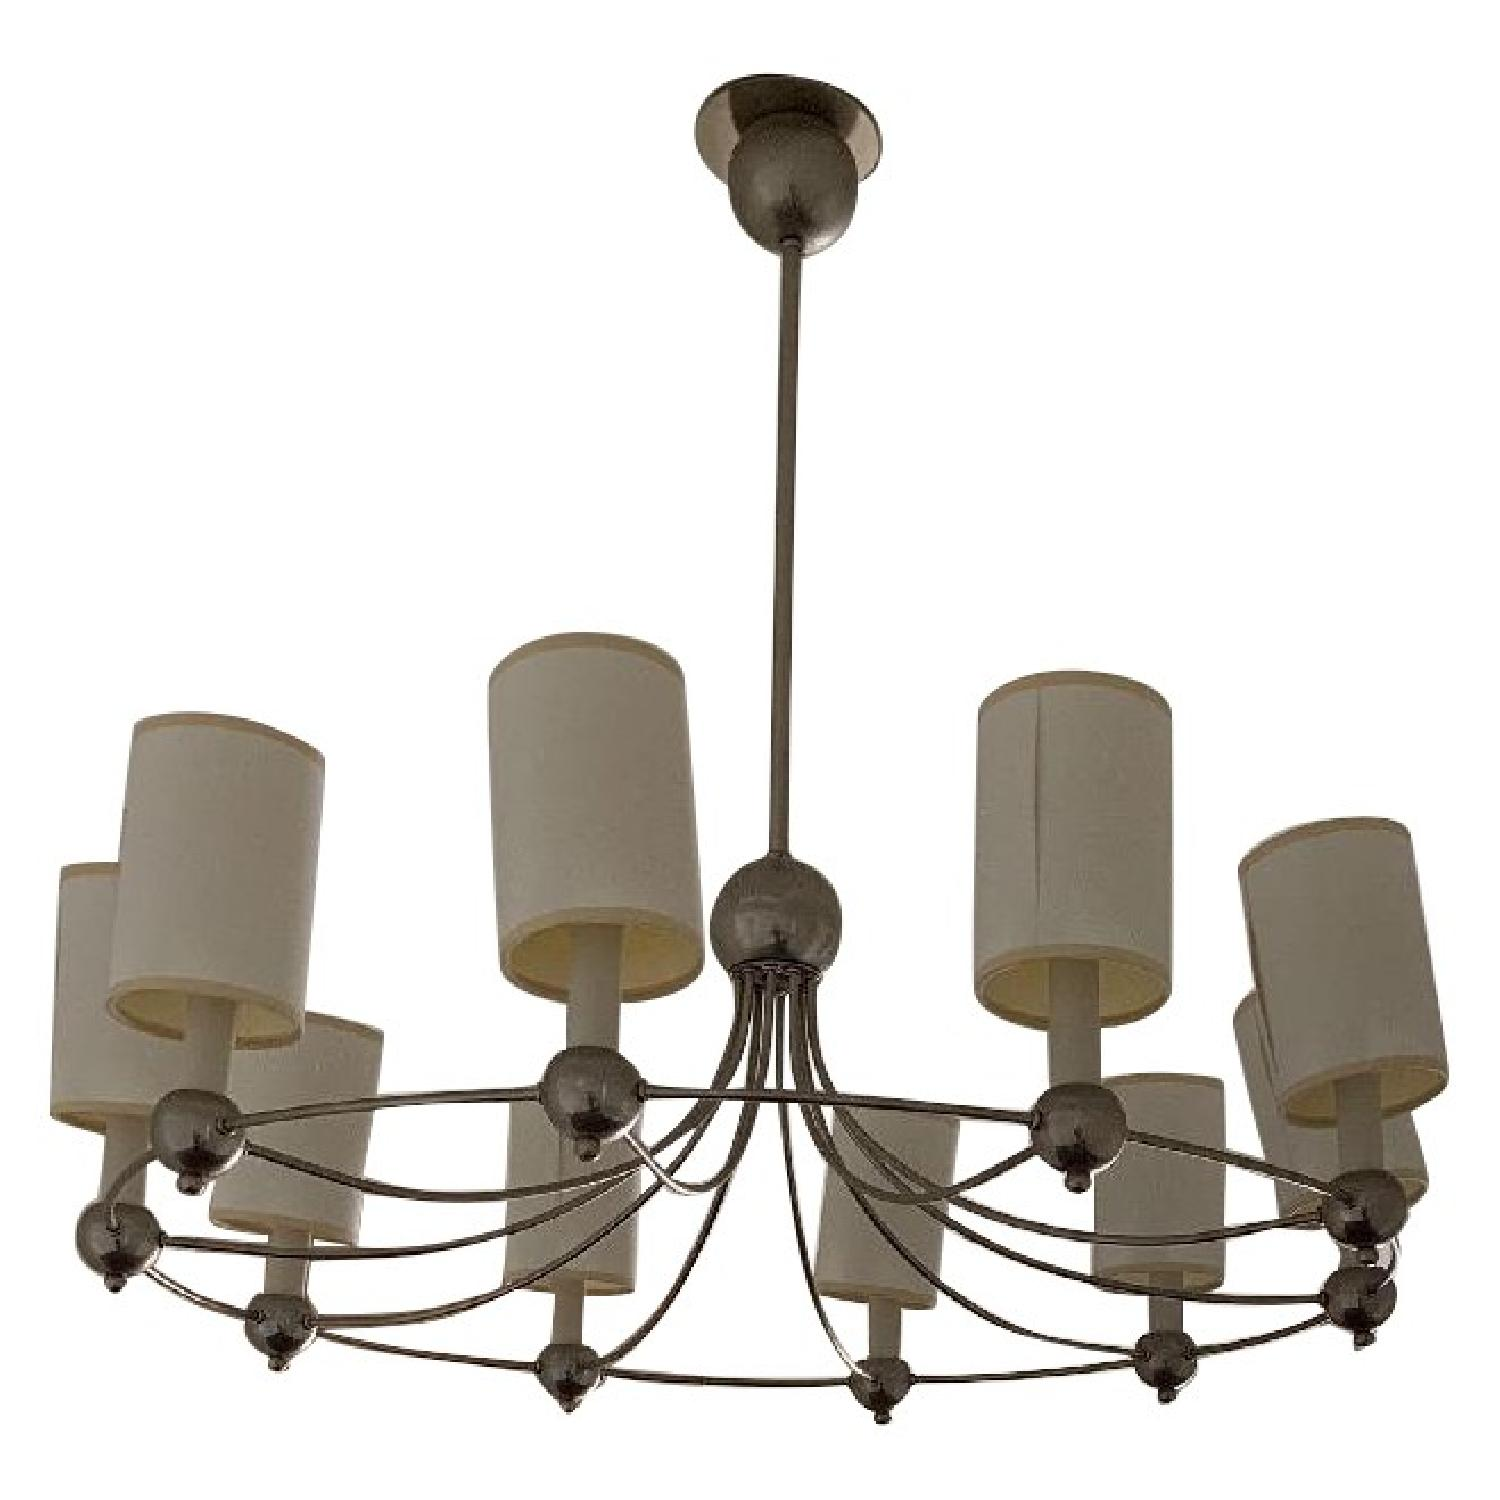 Remains Antique Mid-Century Modern 10 Light Round Chandelier